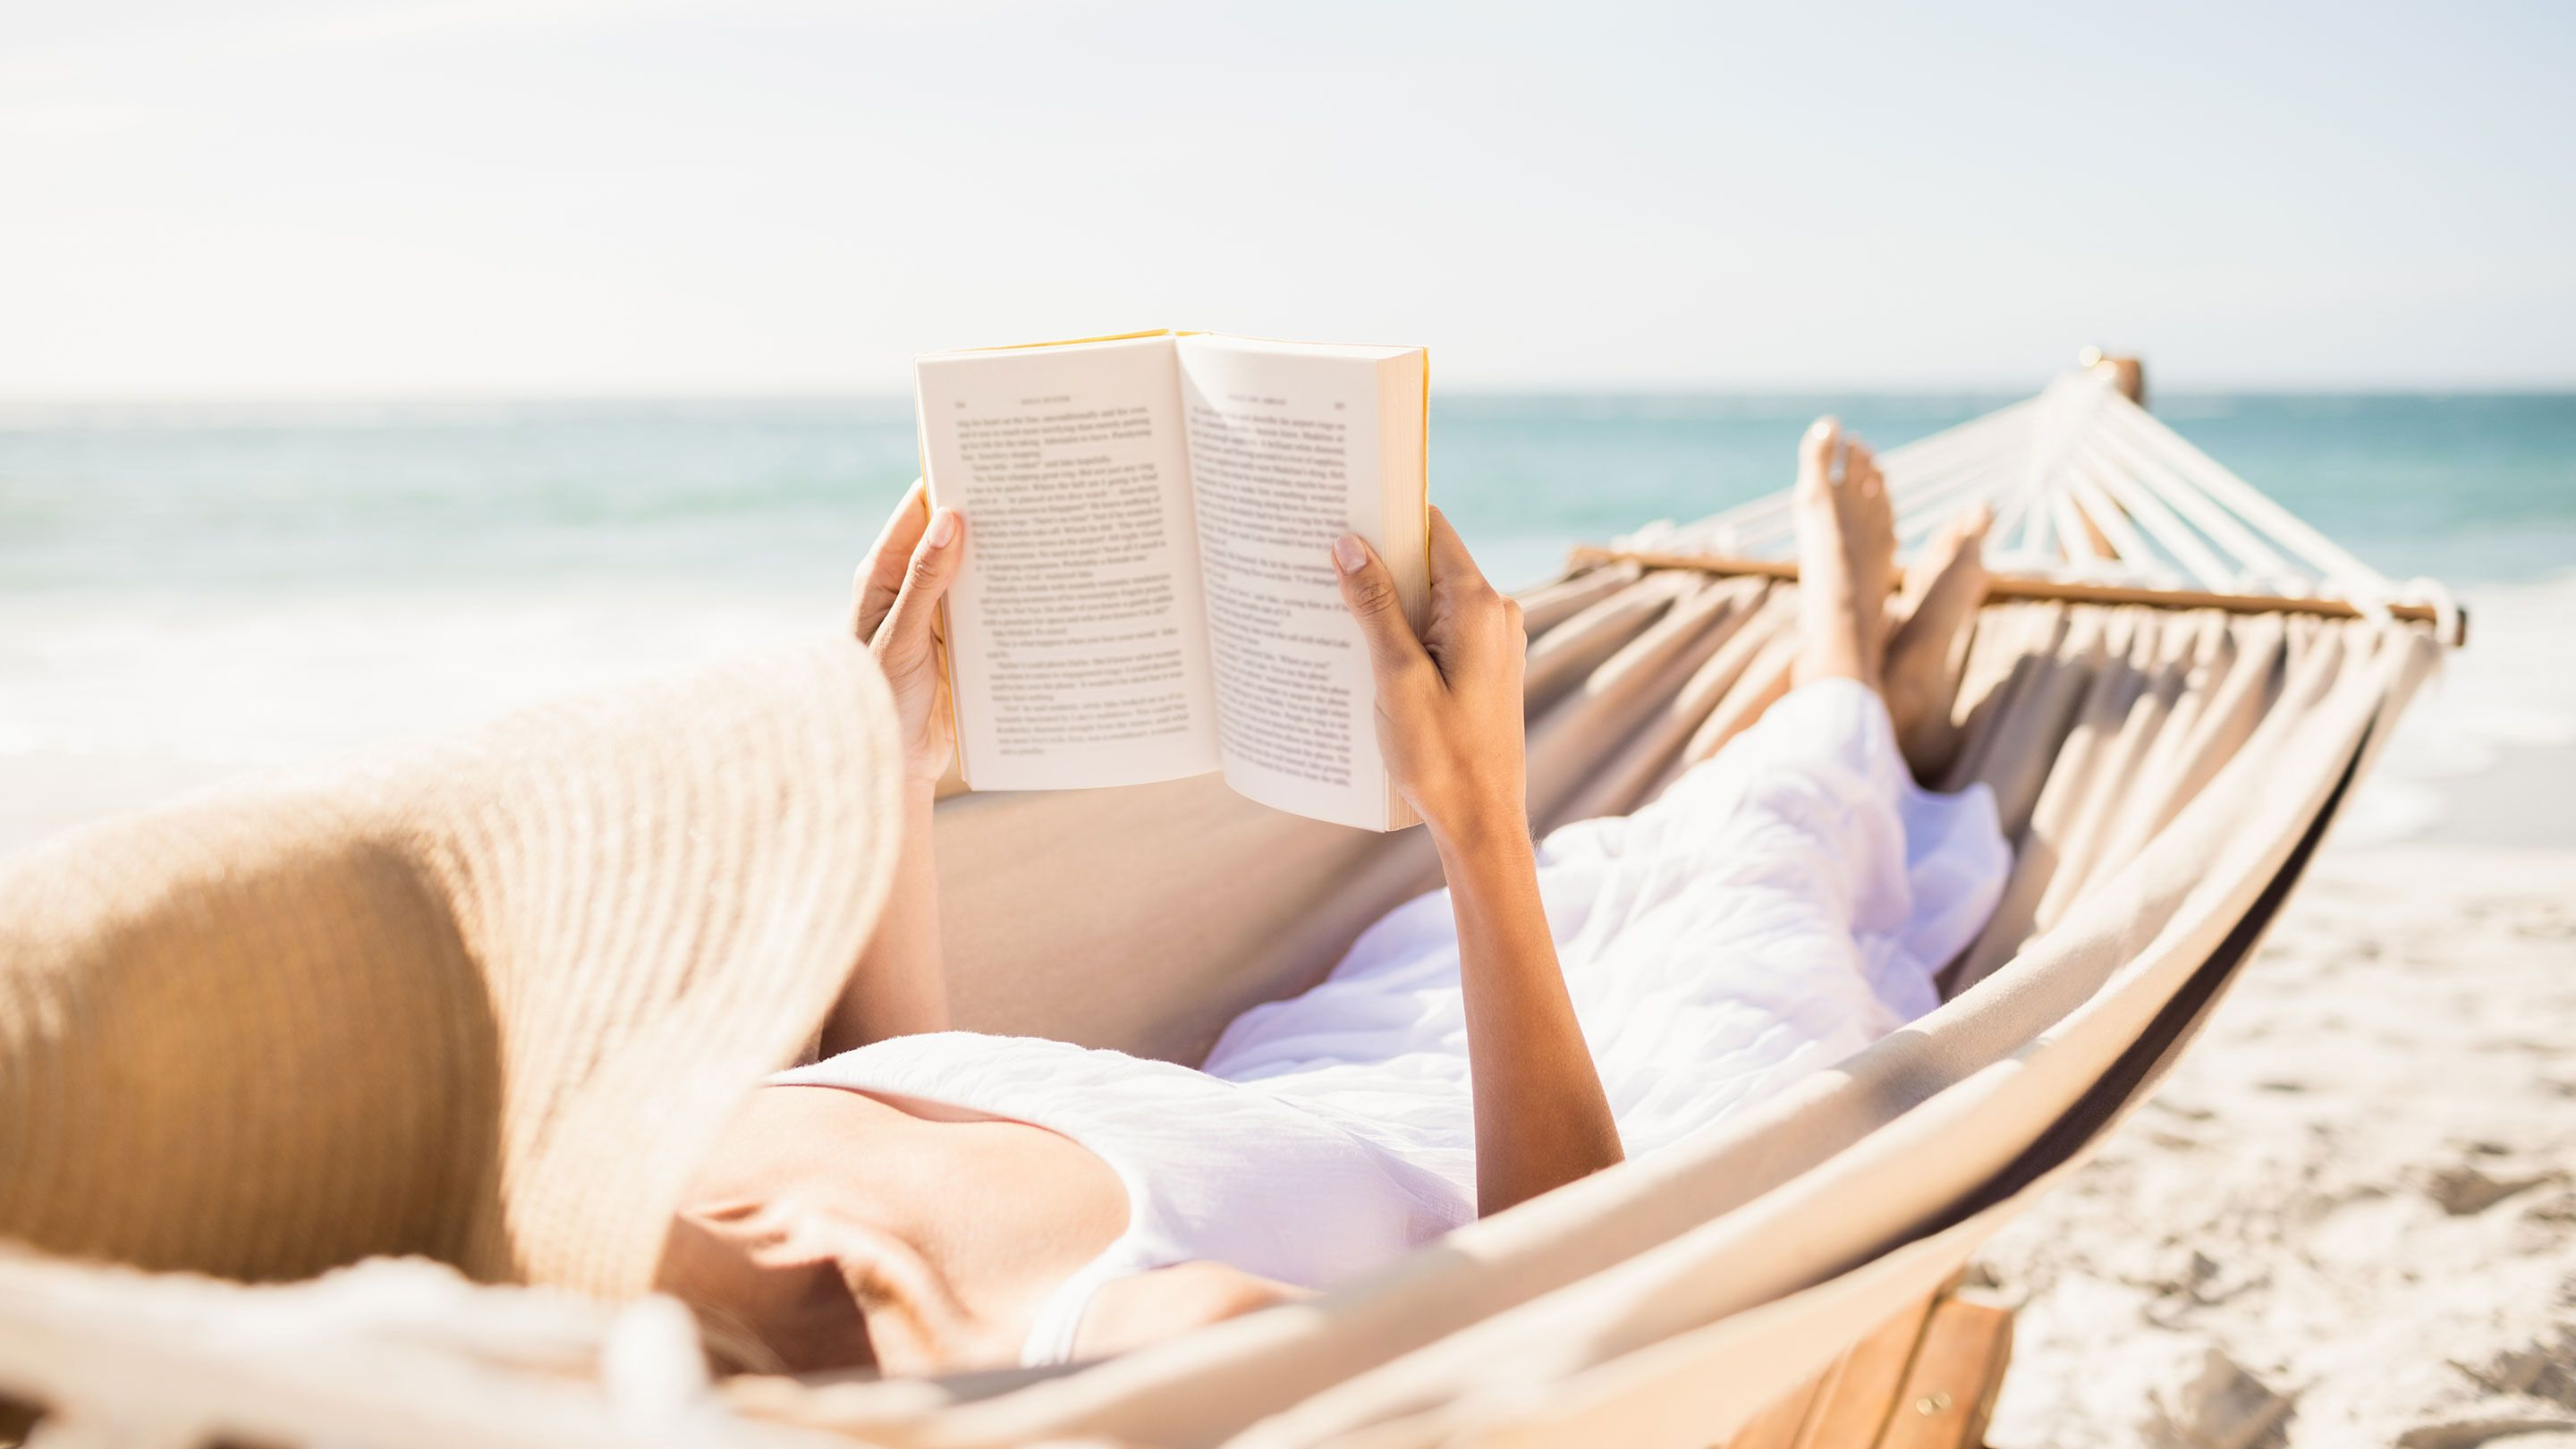 Woman on the beach reading and lounging in a hammock.